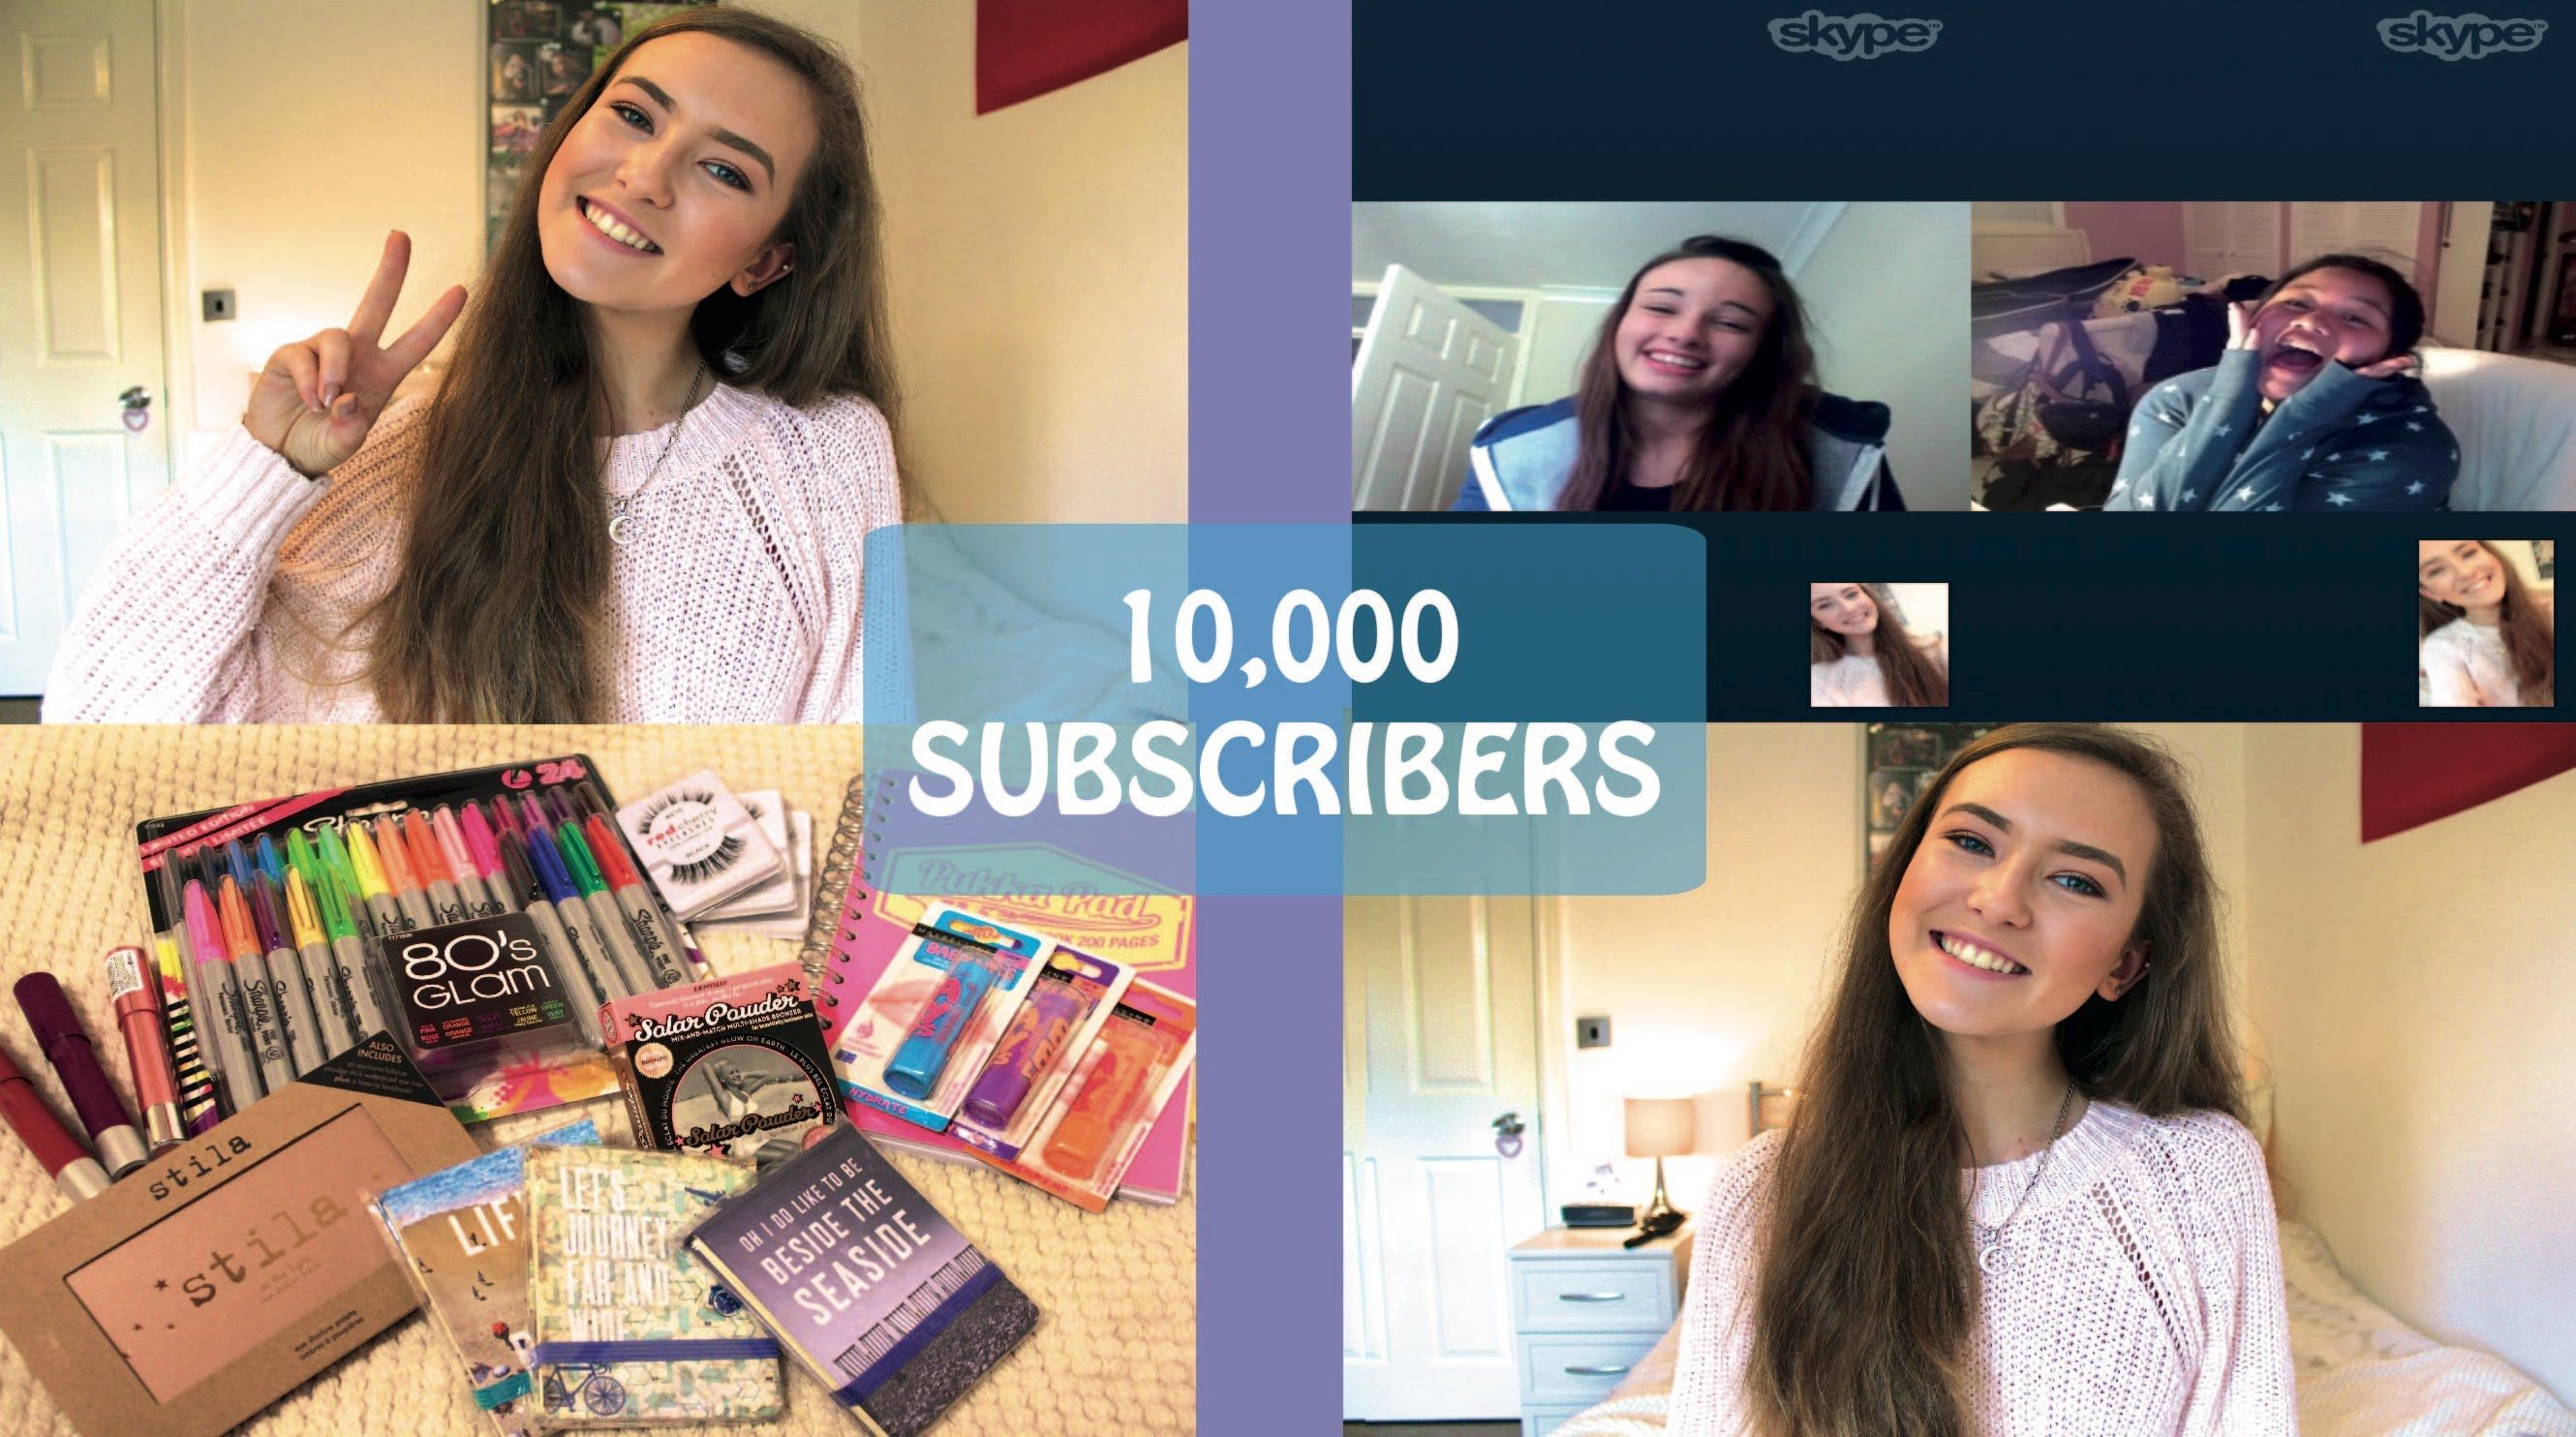 10,000 Subscriber Giveaway! Q&A & Skyping You ♡ Diy